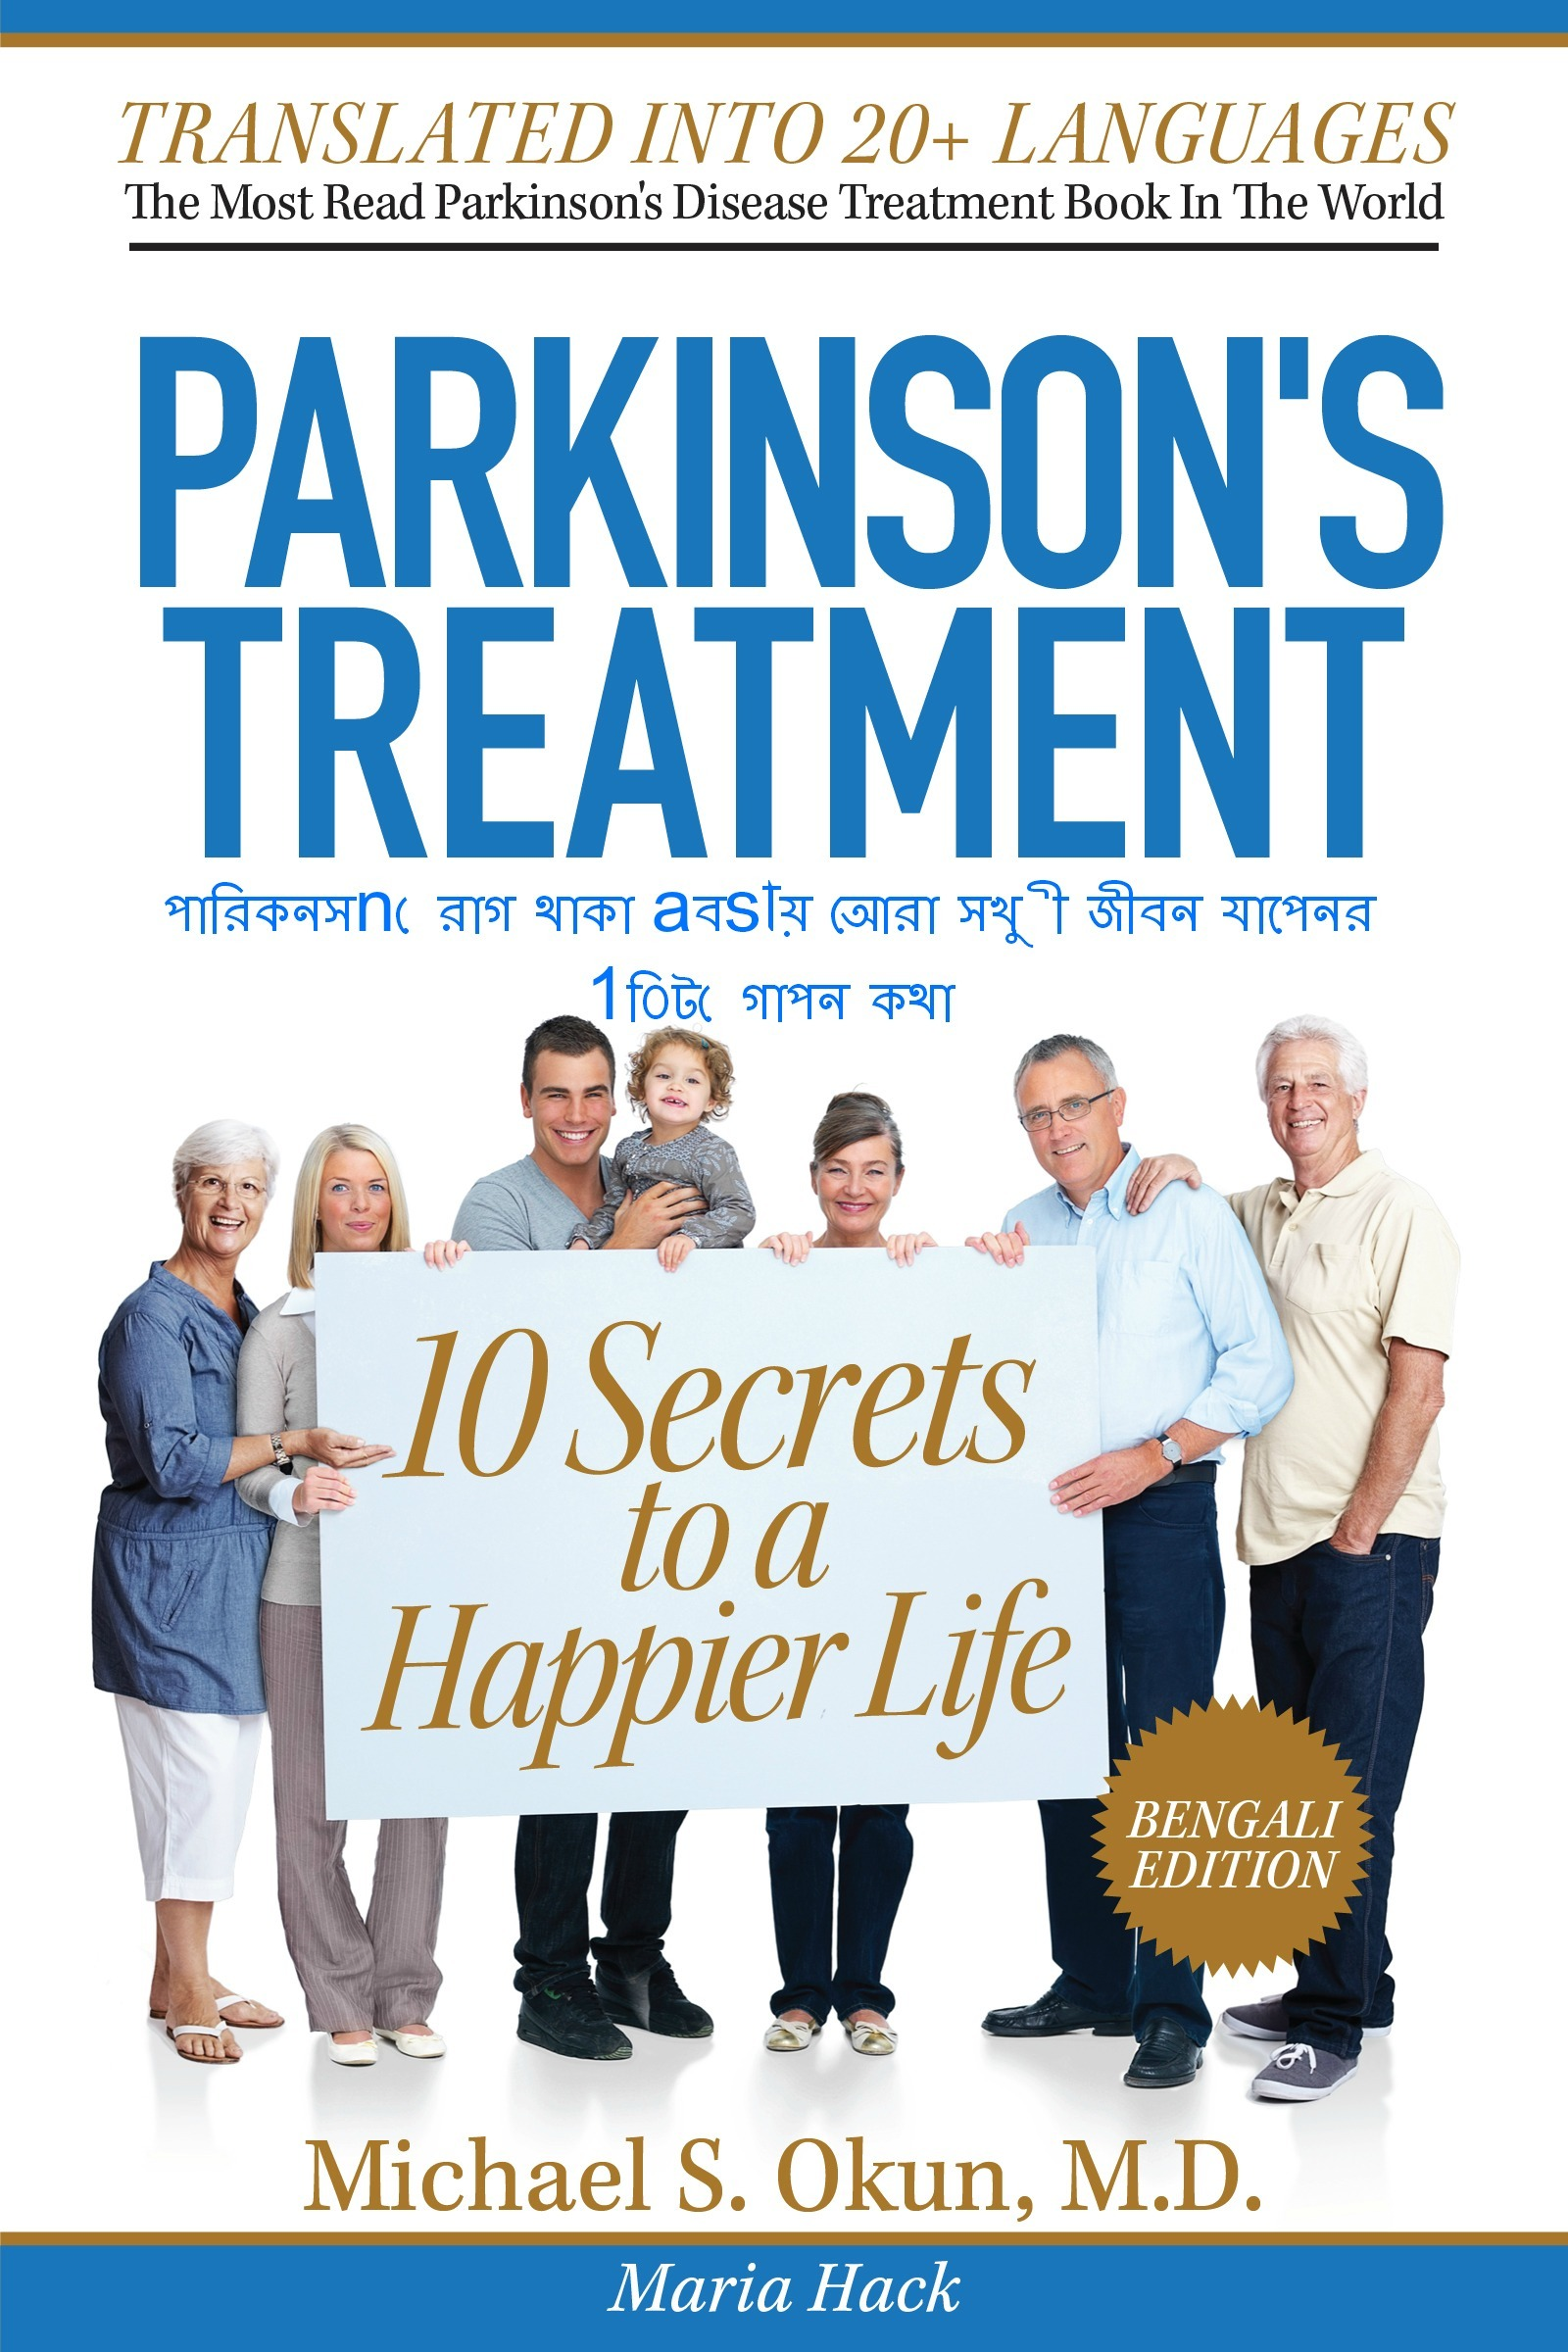 Parkinson's Treatment Bengali Edition: 10 Secrets to a Happier Life:পারিকনসn েরাগ থাকা aবsায় আেরা সখু ী জীবন যাপেনর 10িট েগাপন কথা মাiেকল eস. o